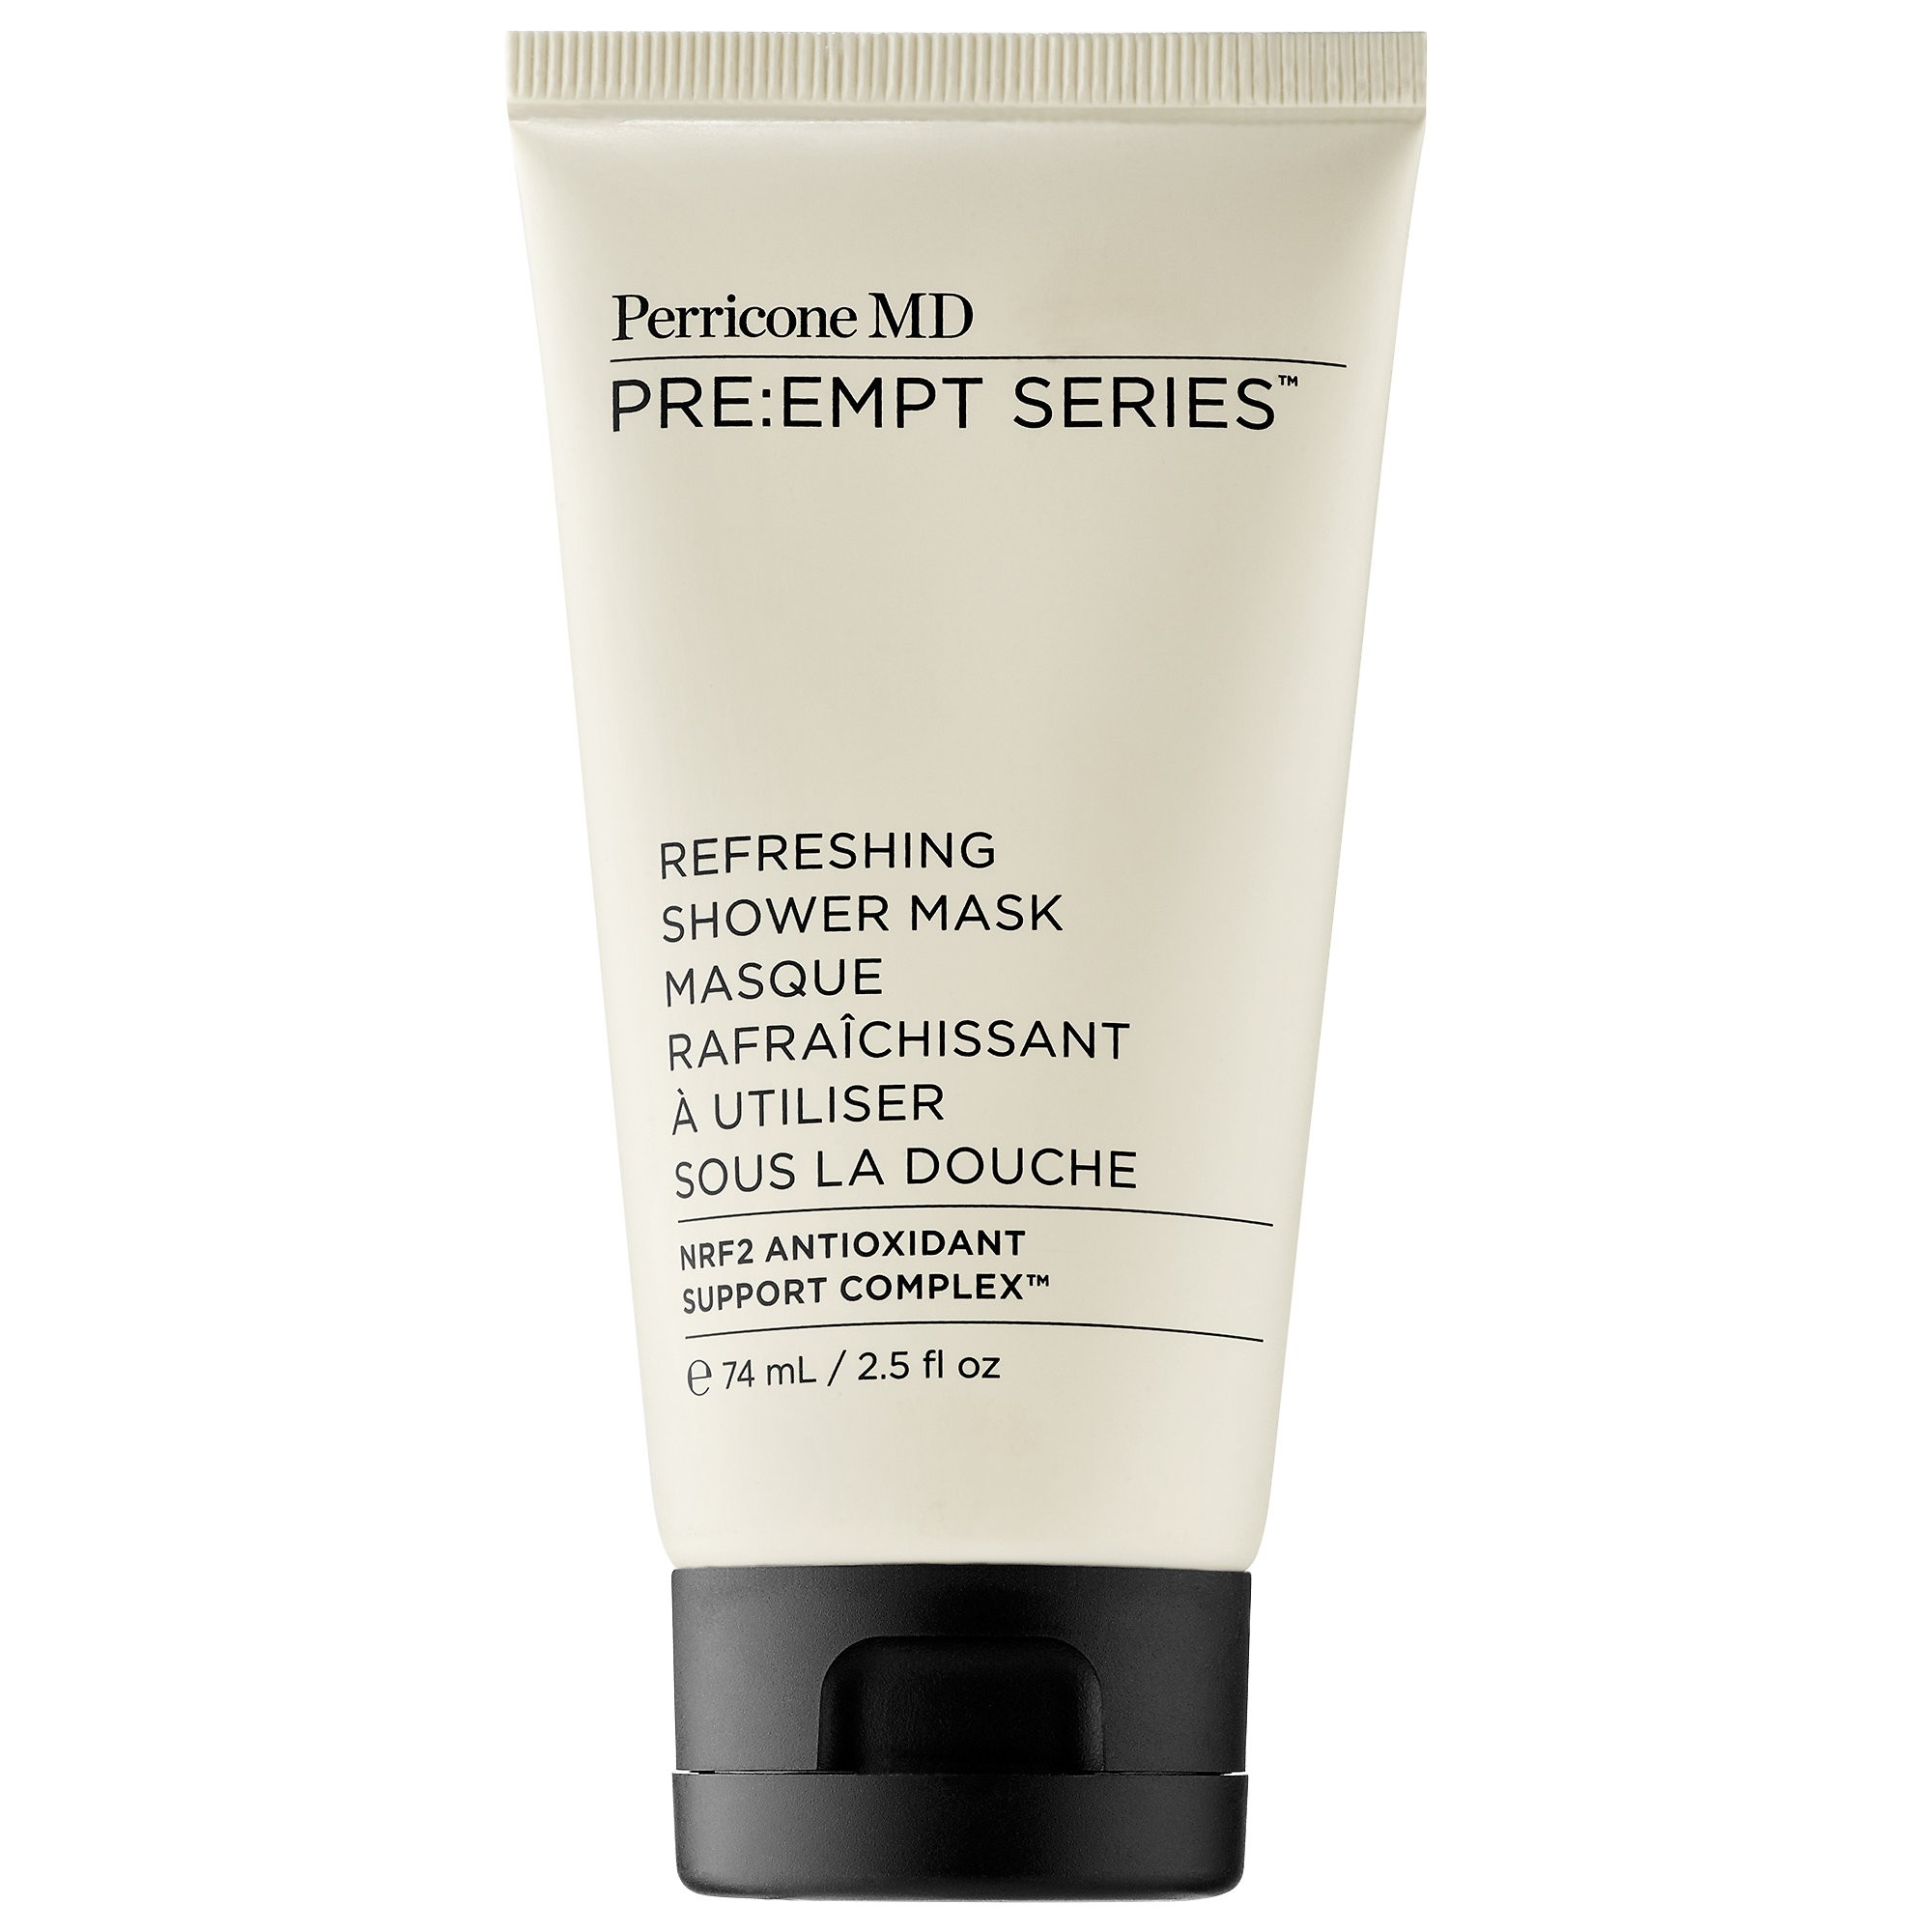 Pre:empt Refreshing Shower Mask  - PERRICONE MD